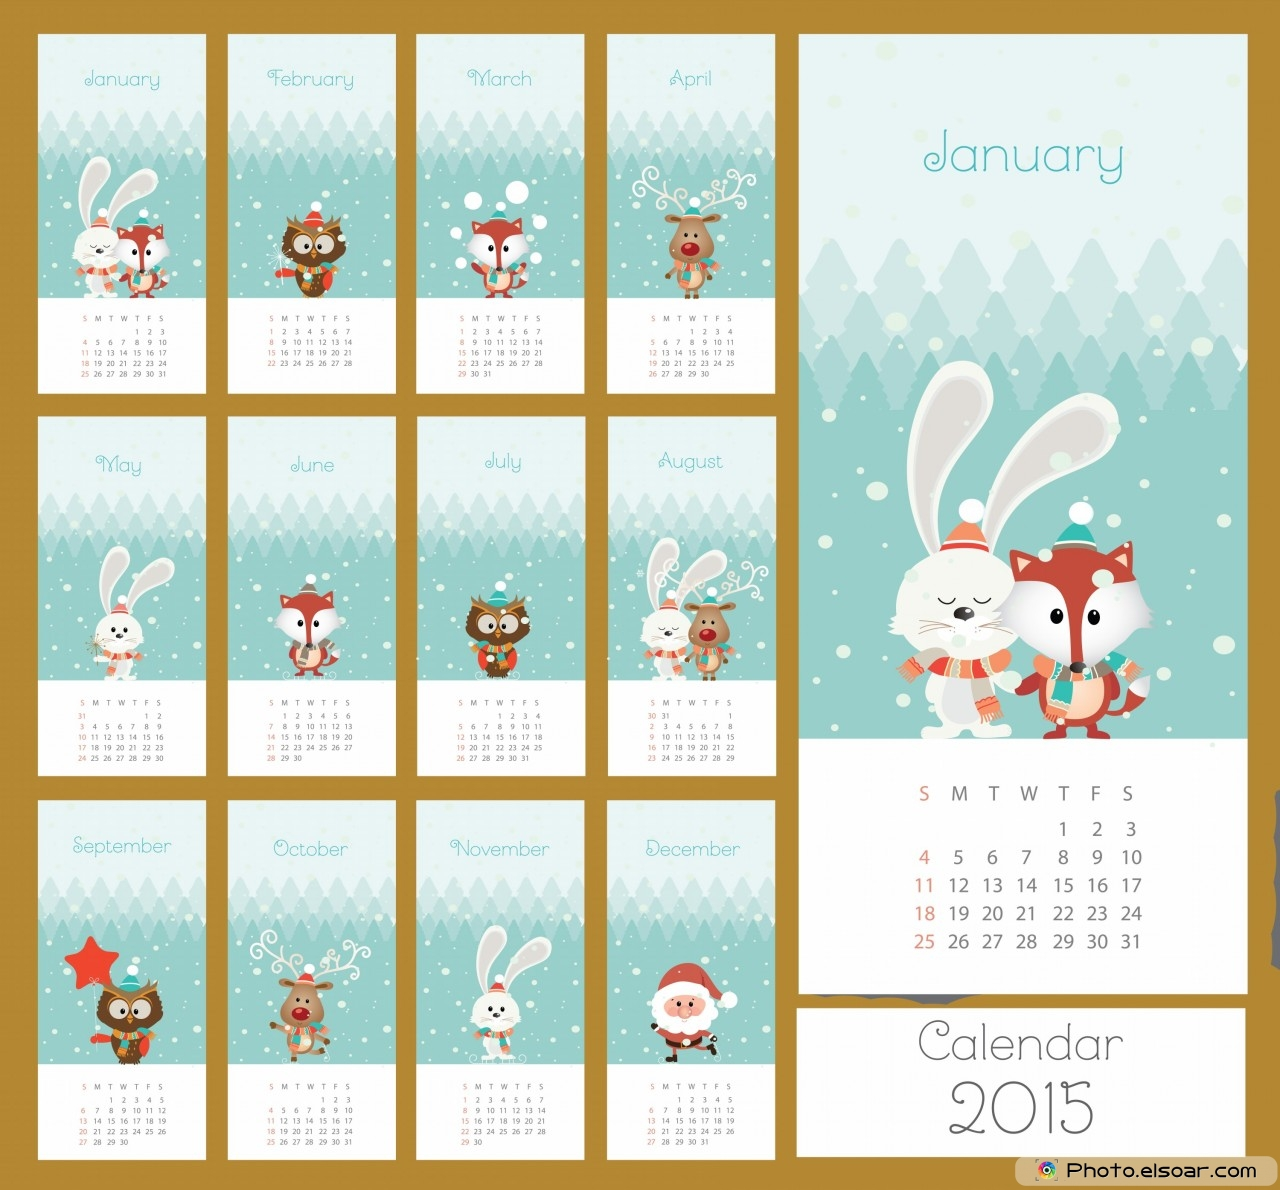 Simple Calendar 2015 With Pets For Children